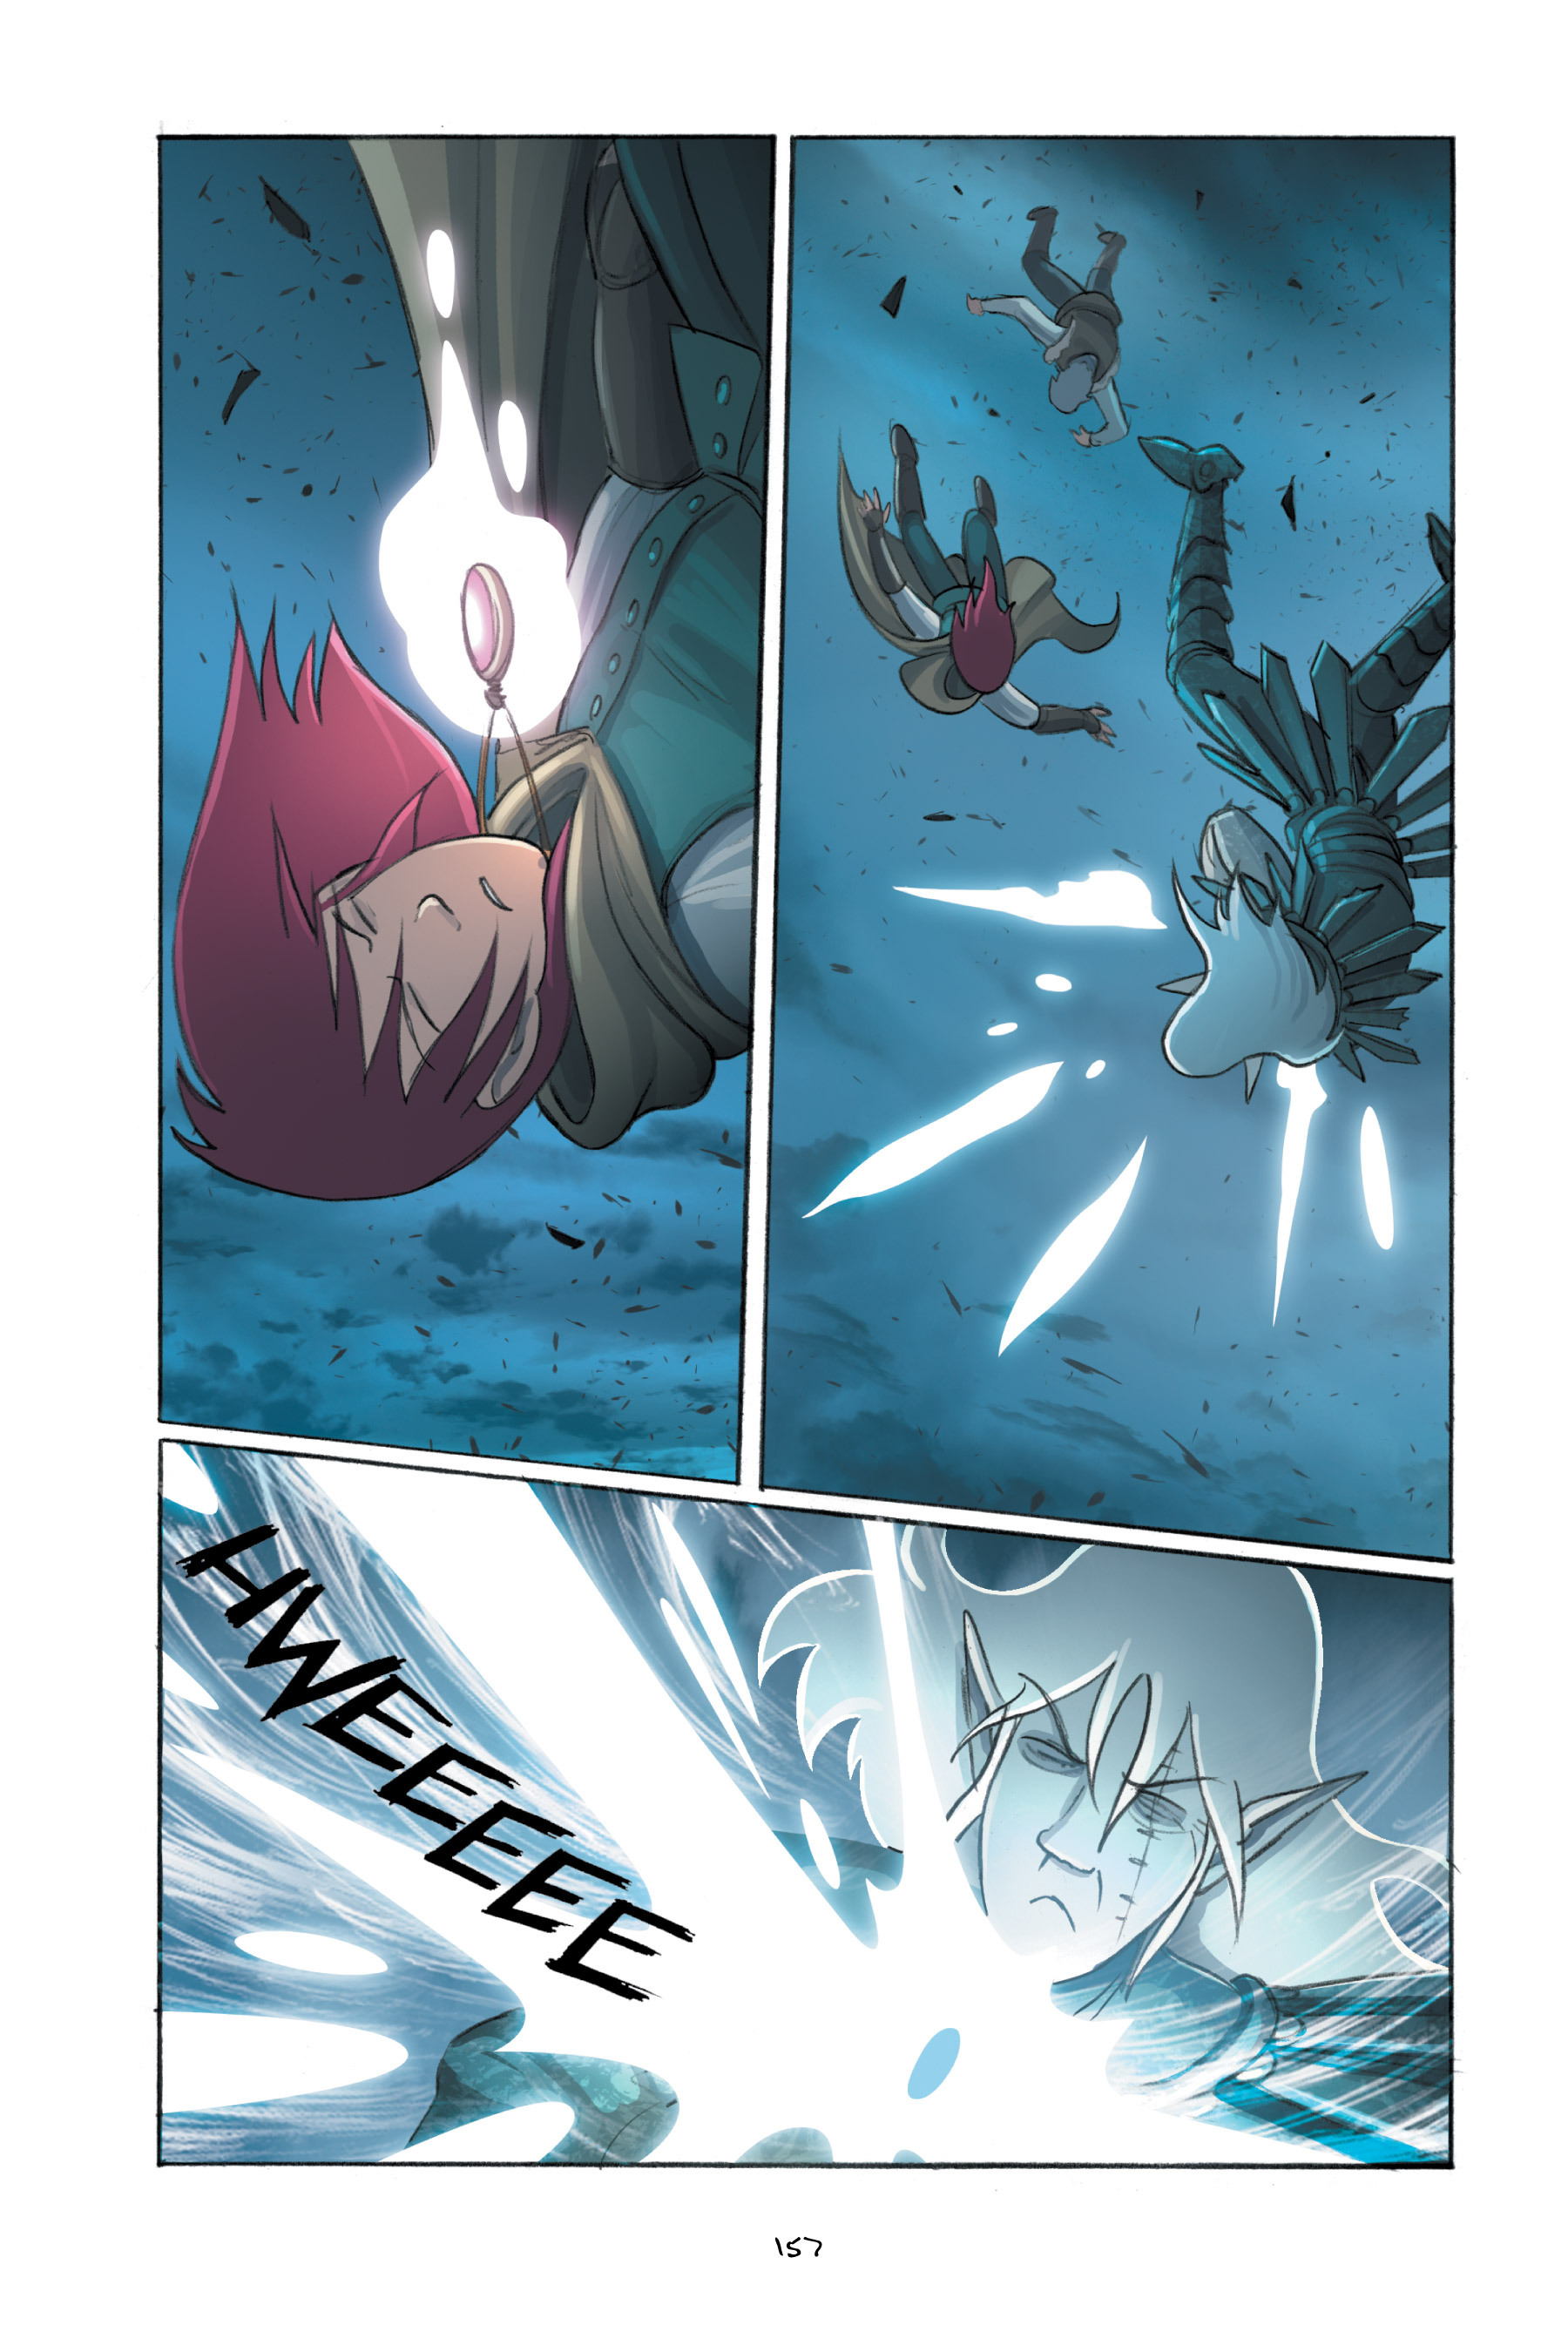 Read online Amulet comic -  Issue #5 - 157